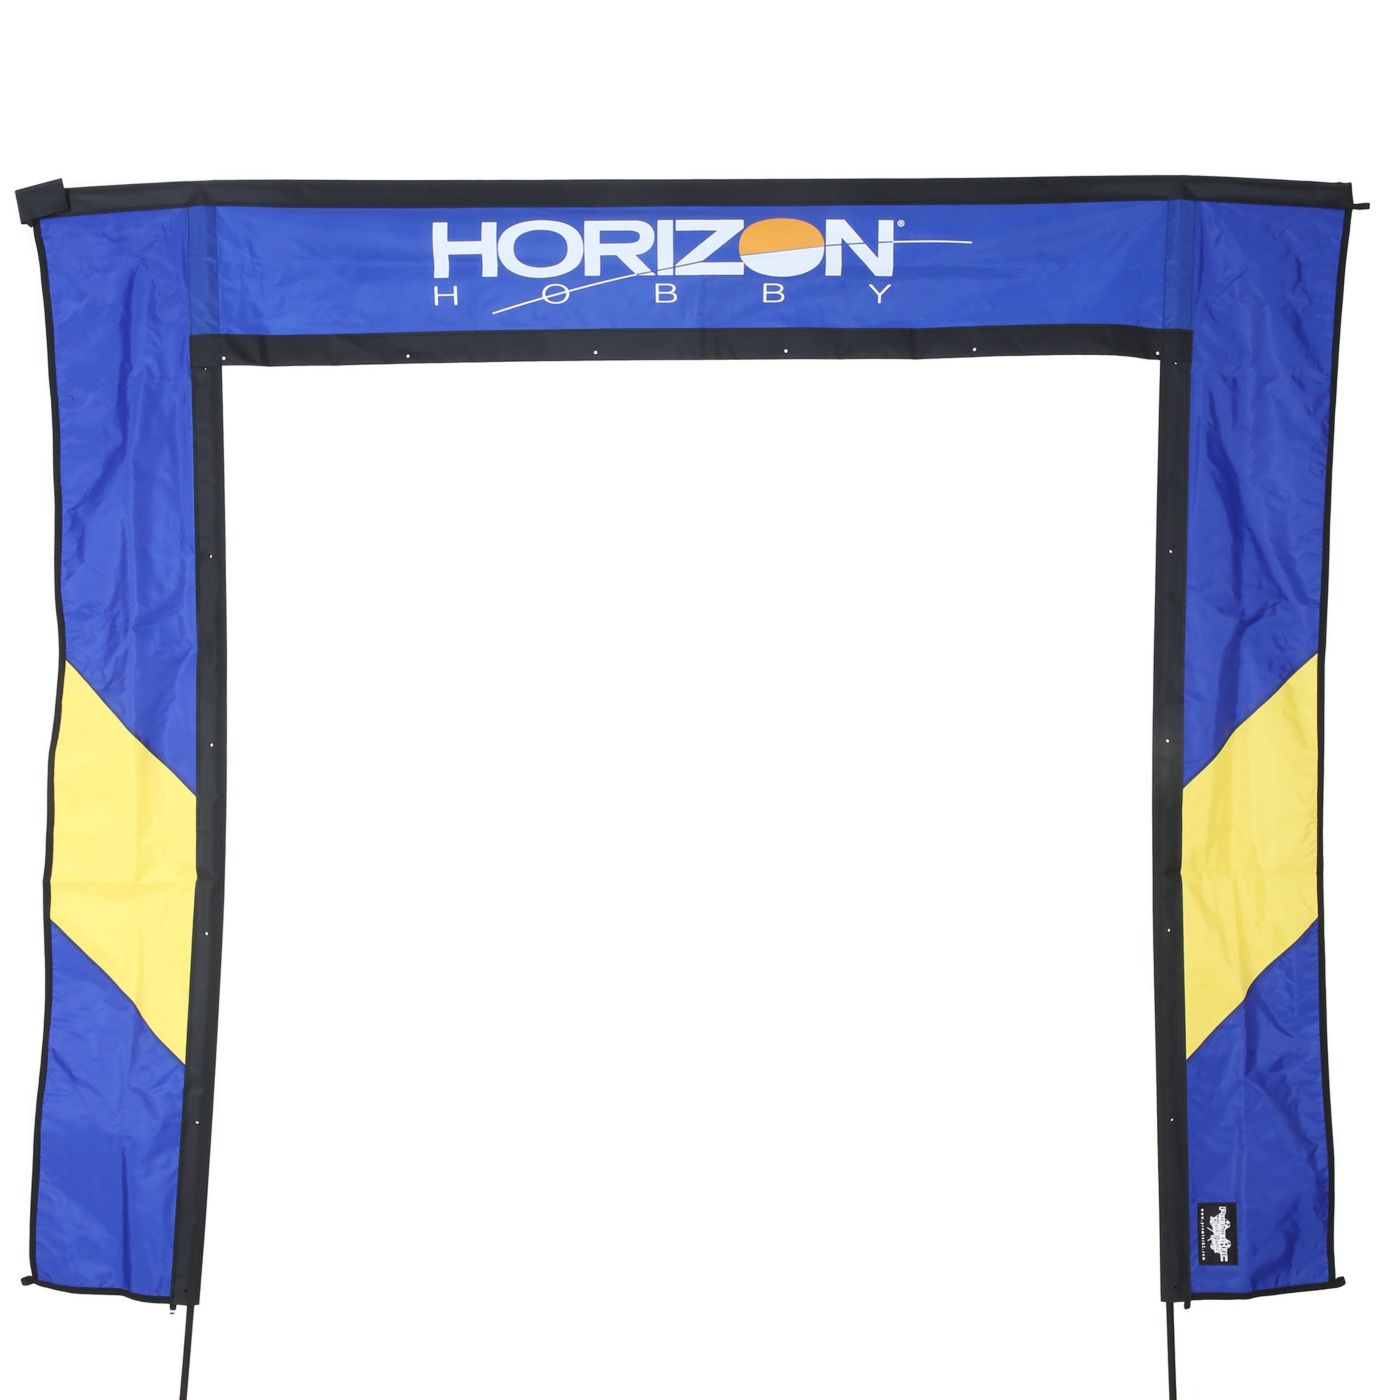 5x5 fpv race gate set with bag 5 horizon logo